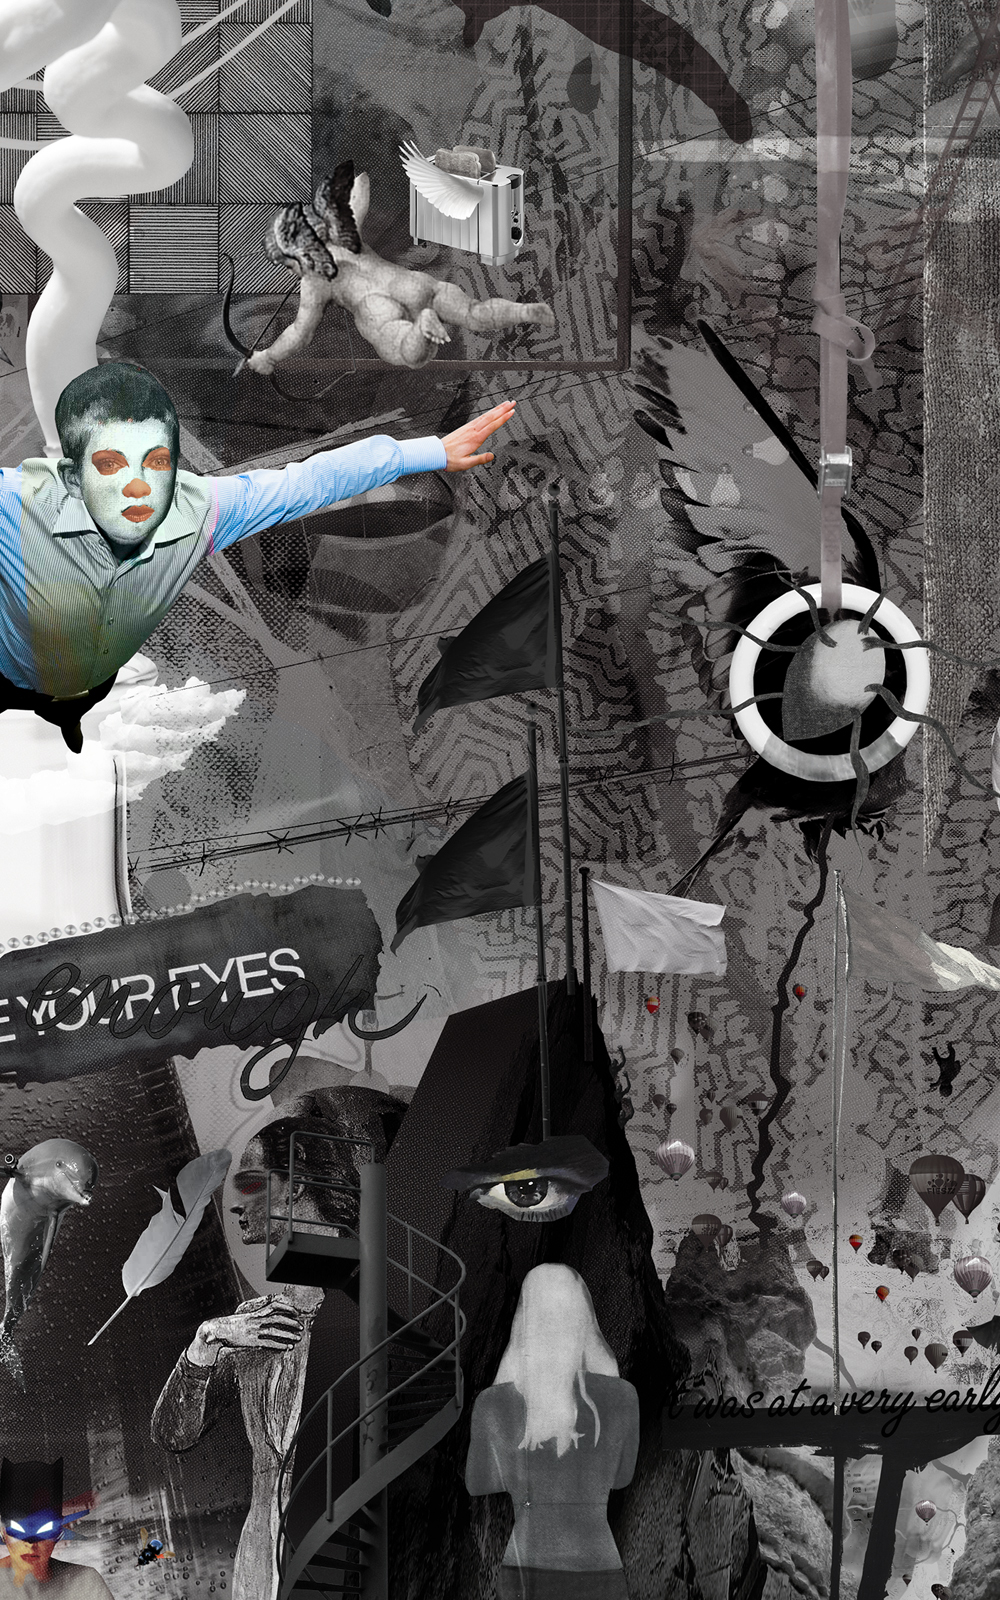 Case Simmons, Simmons & Burke, If Not Summer #2, Kohn Gallery, Hieronymus Bosch, Lightjet Print, Digital Collage, Digital Art, Photoshop Collage, Contemporary Collage, Case Simmons Art, Case Simmons Artist, Collage Fine Art, Hyper Collage, Future Collage, Black and White Collage